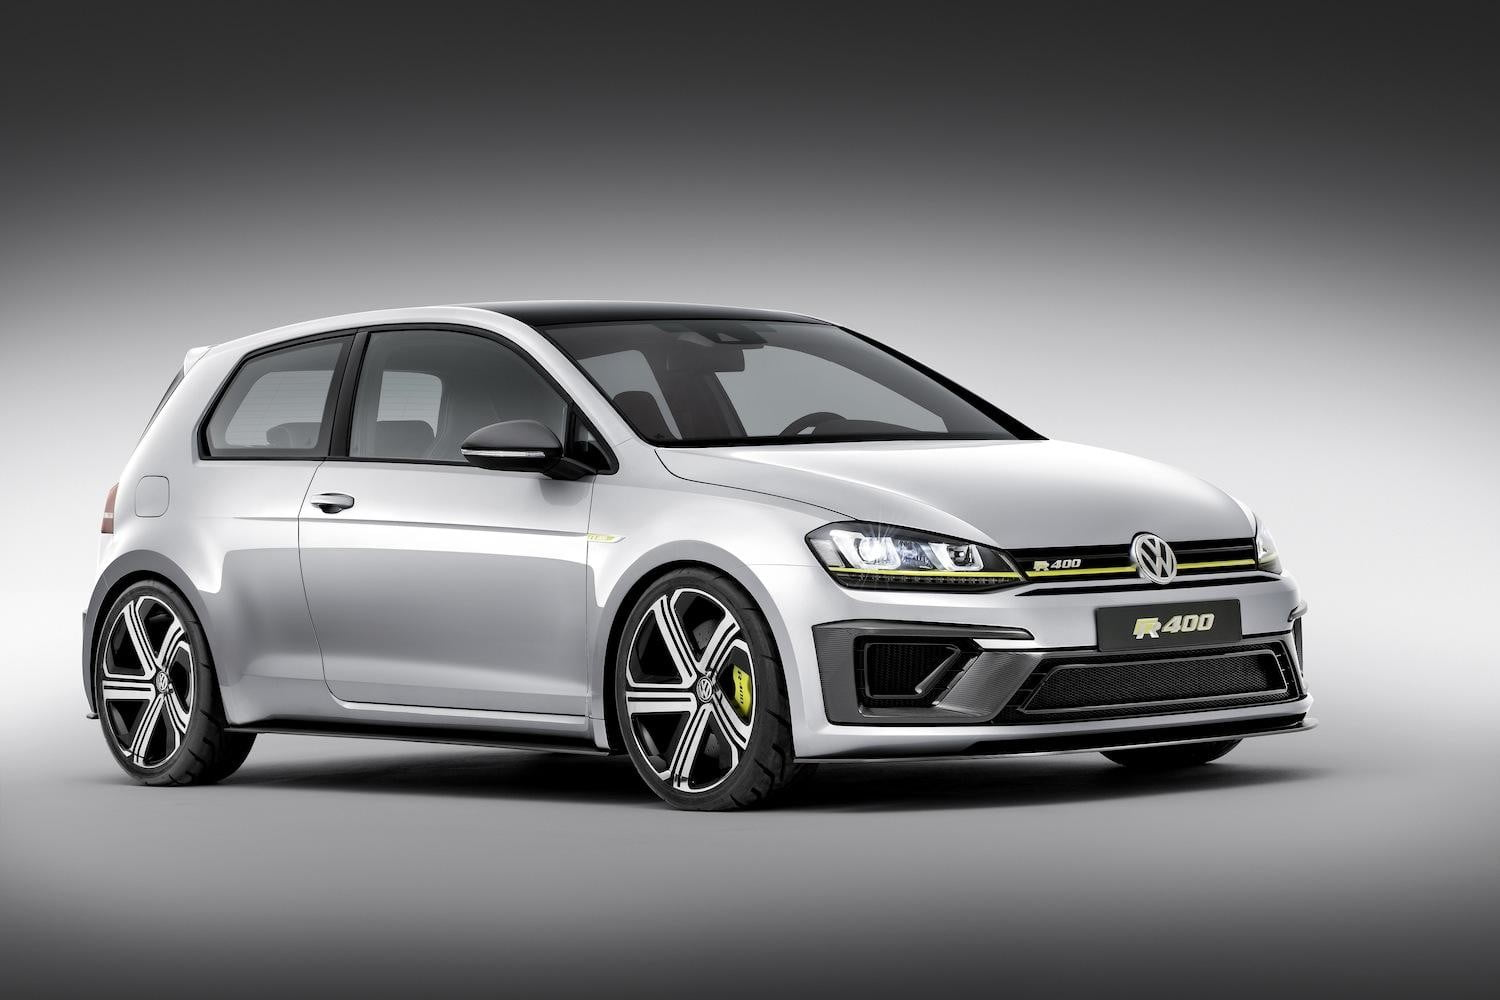 Volkswagen Golf R 400 concept | Official specs, photos, performance |  Digital Trends